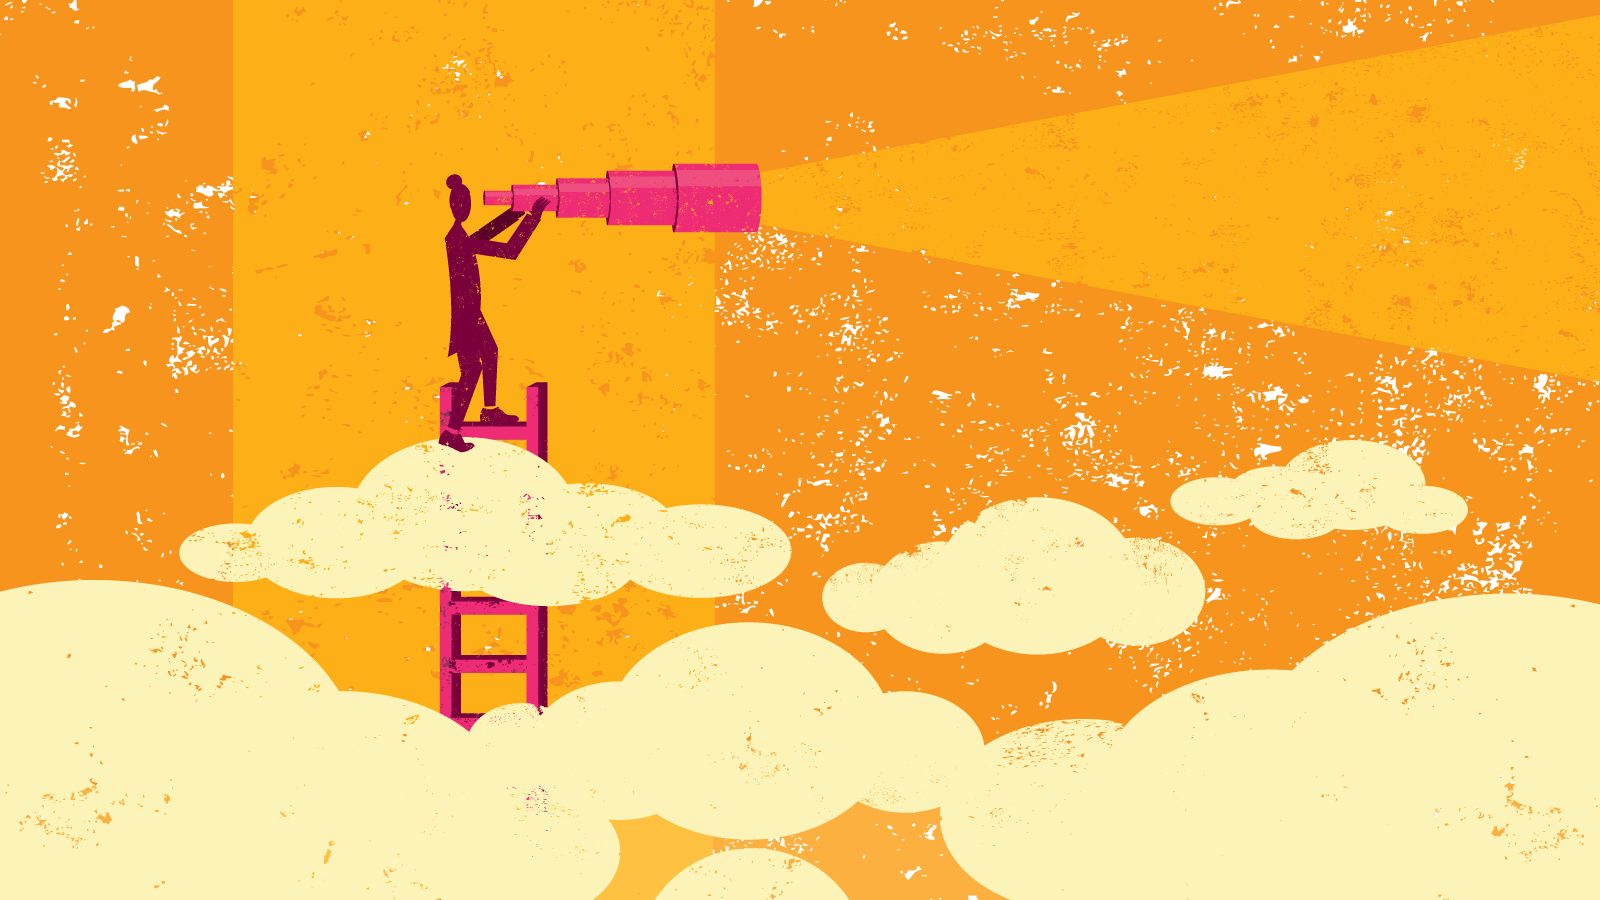 Illustration of person on ladder in clouds looking through giant telescope.